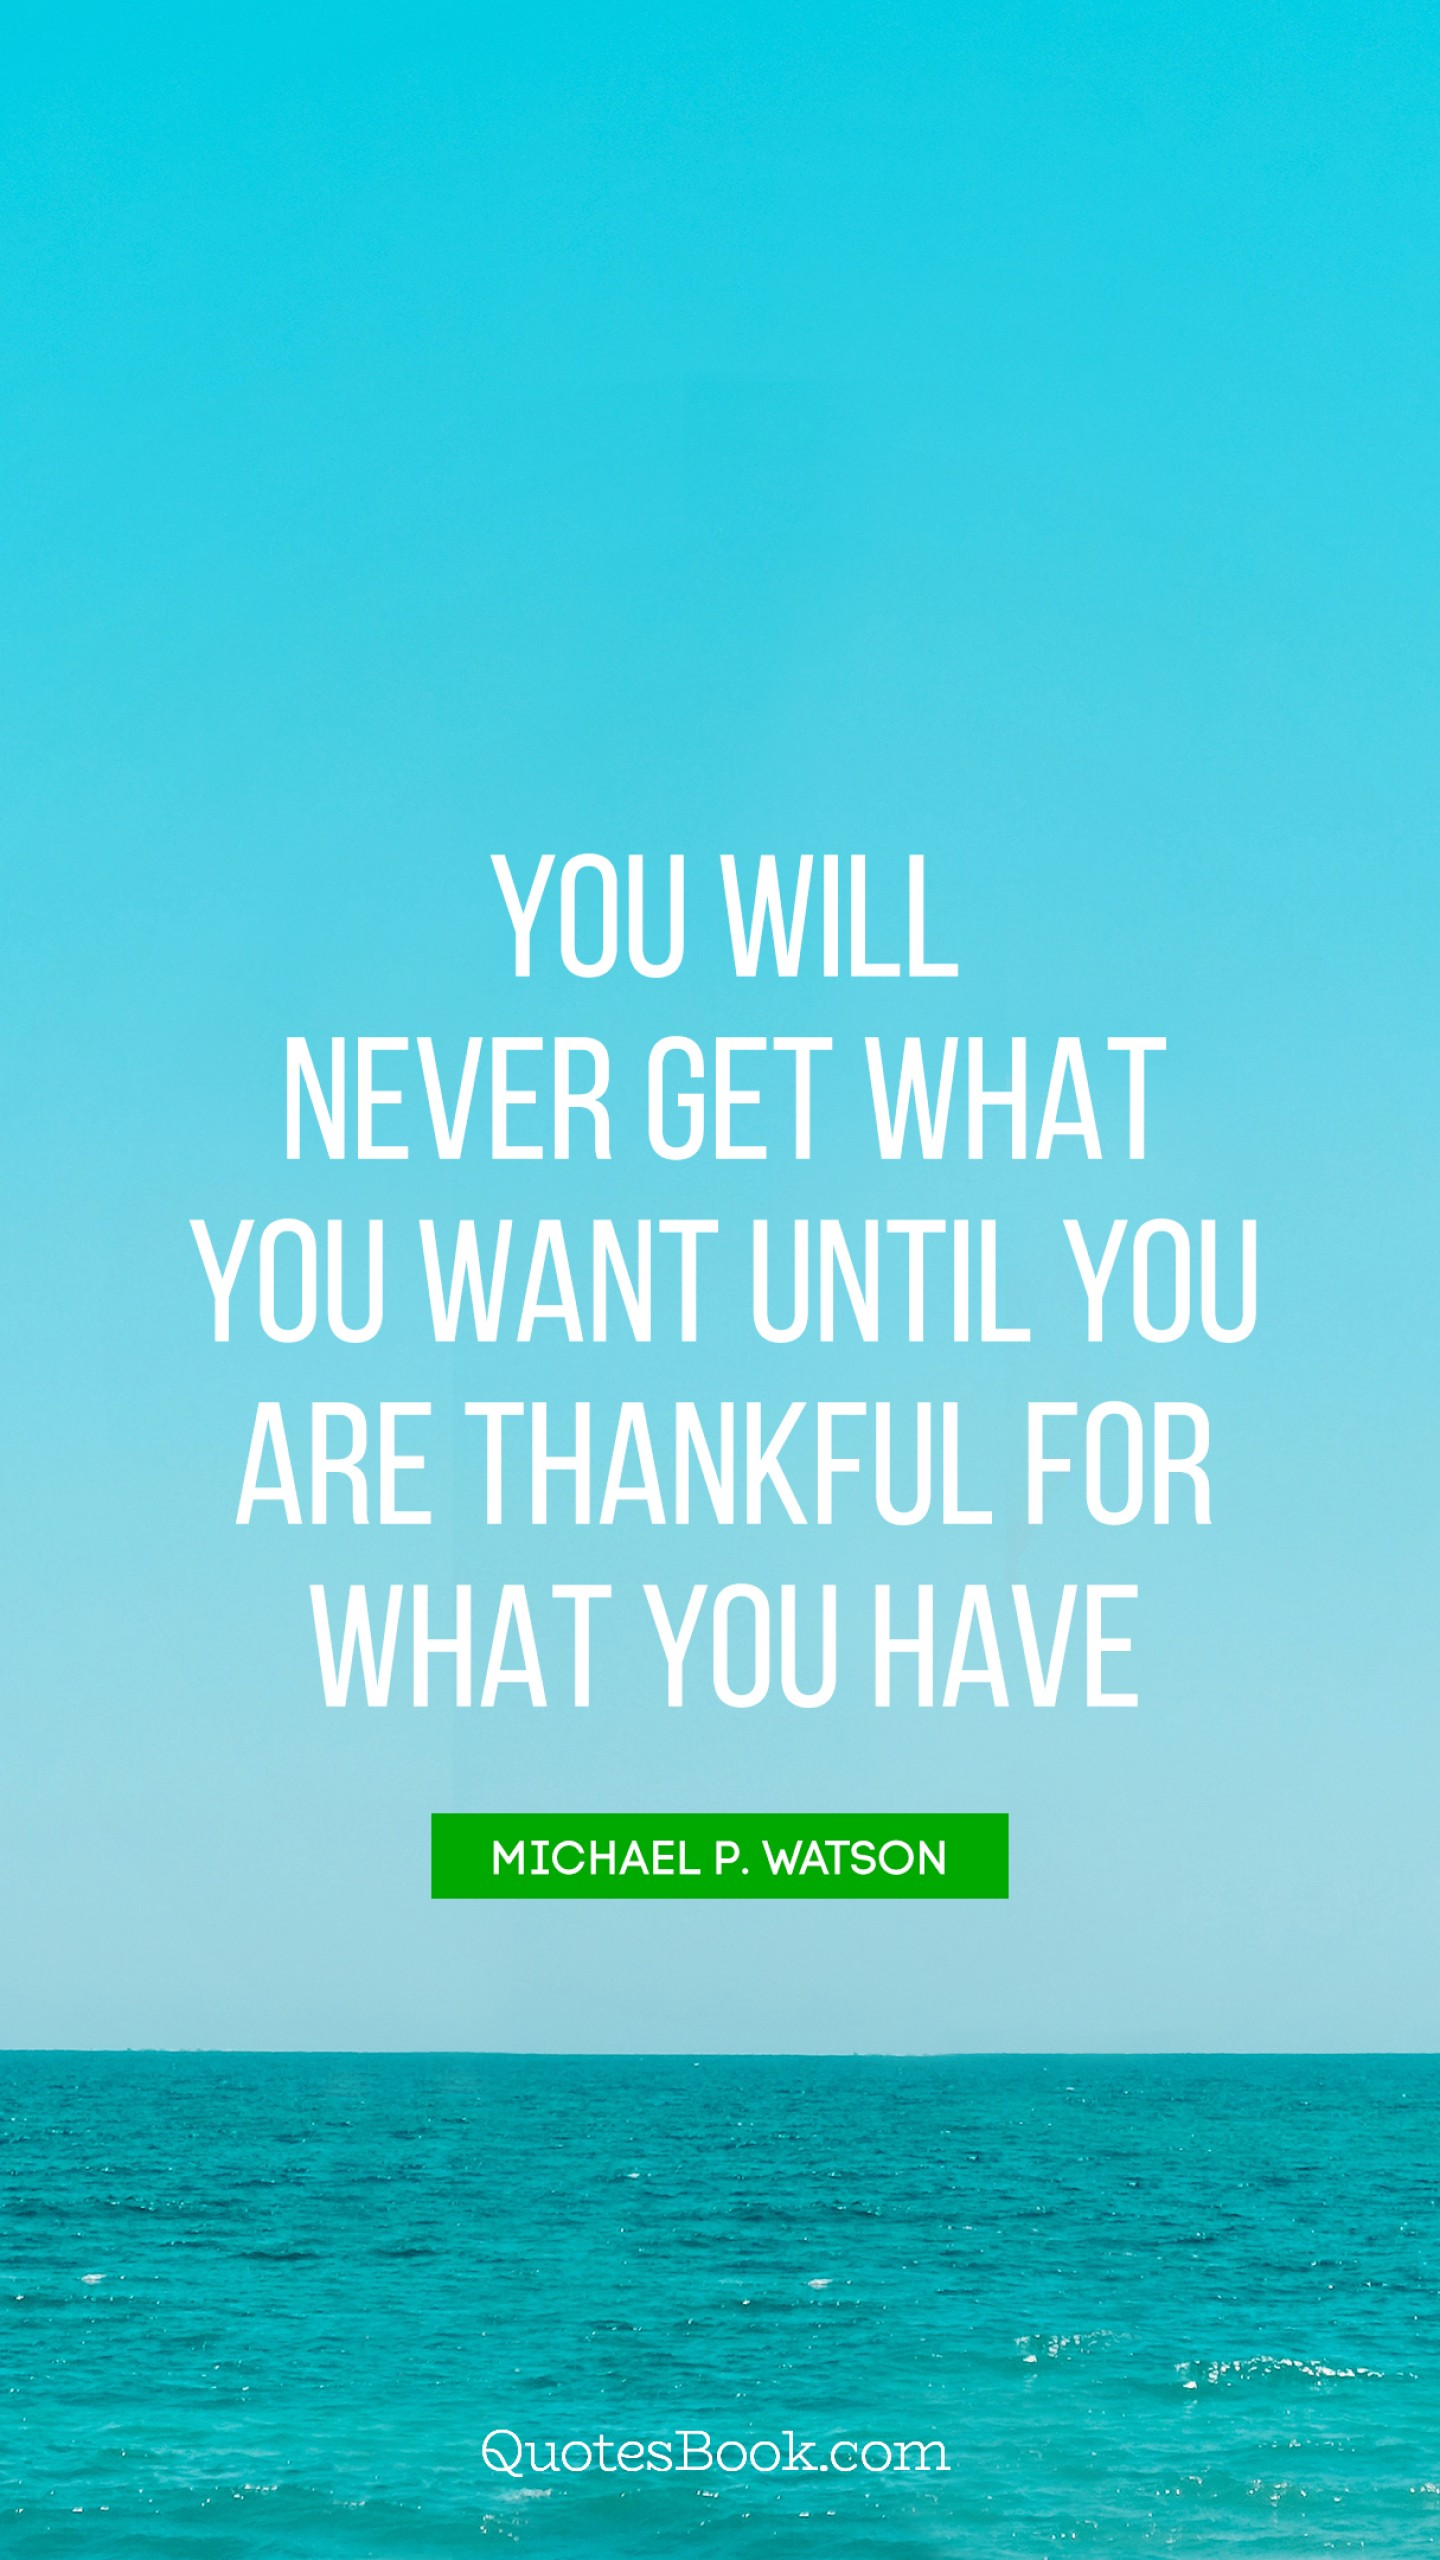 You Will Never Get What You Want Until You Are Thankful For What You